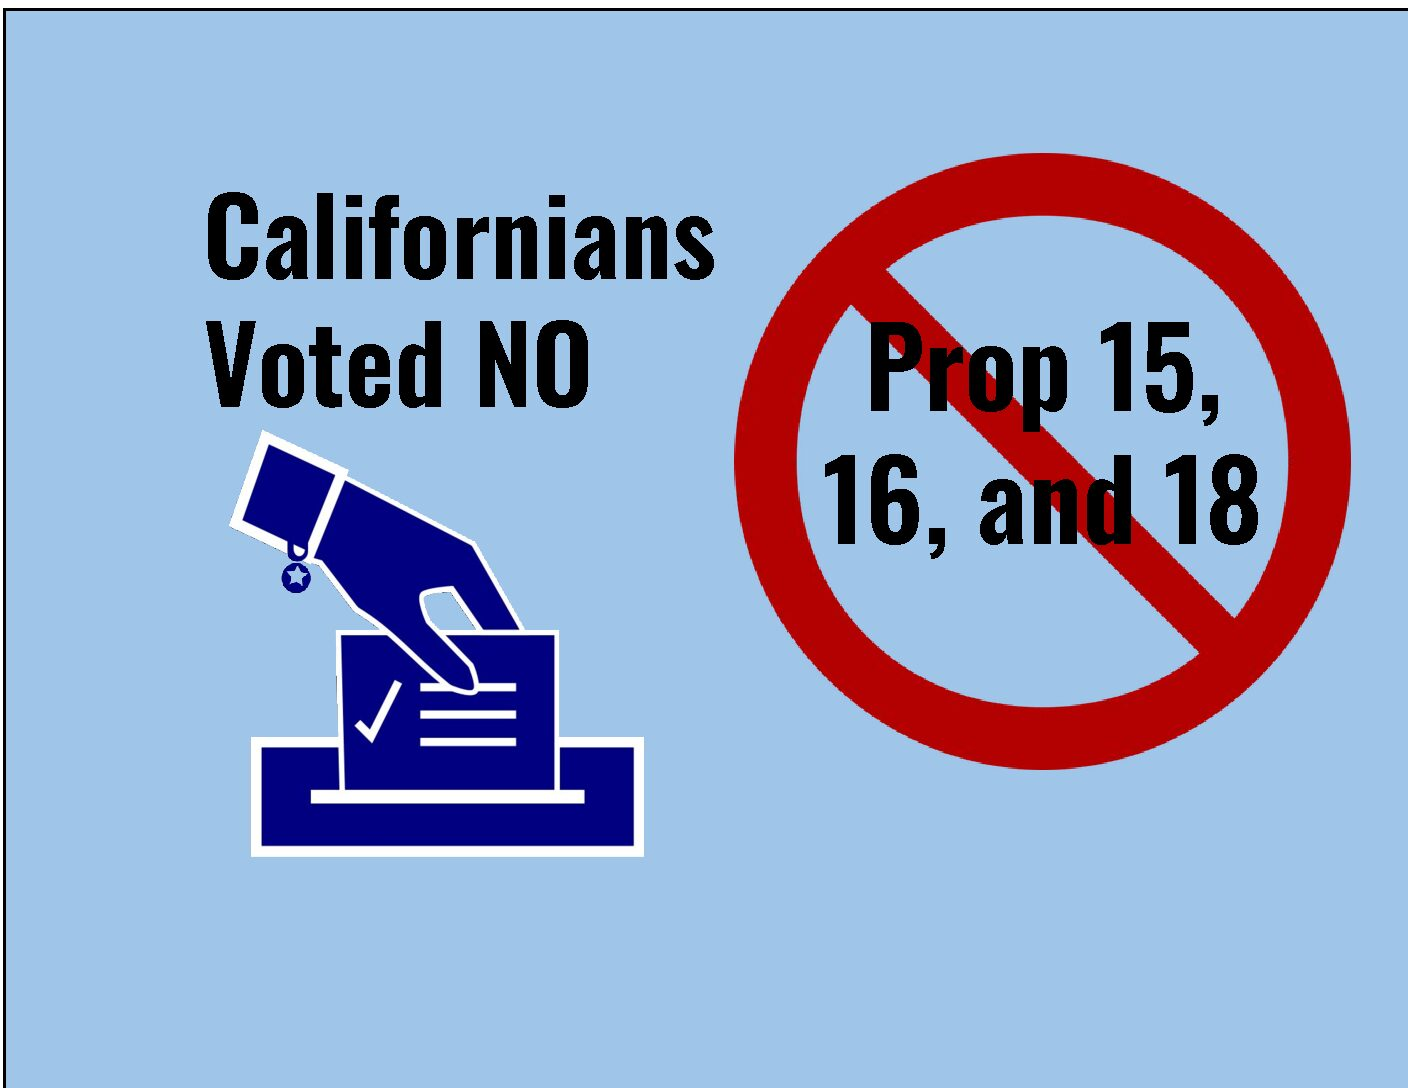 California votes no on 15, 16, and 18